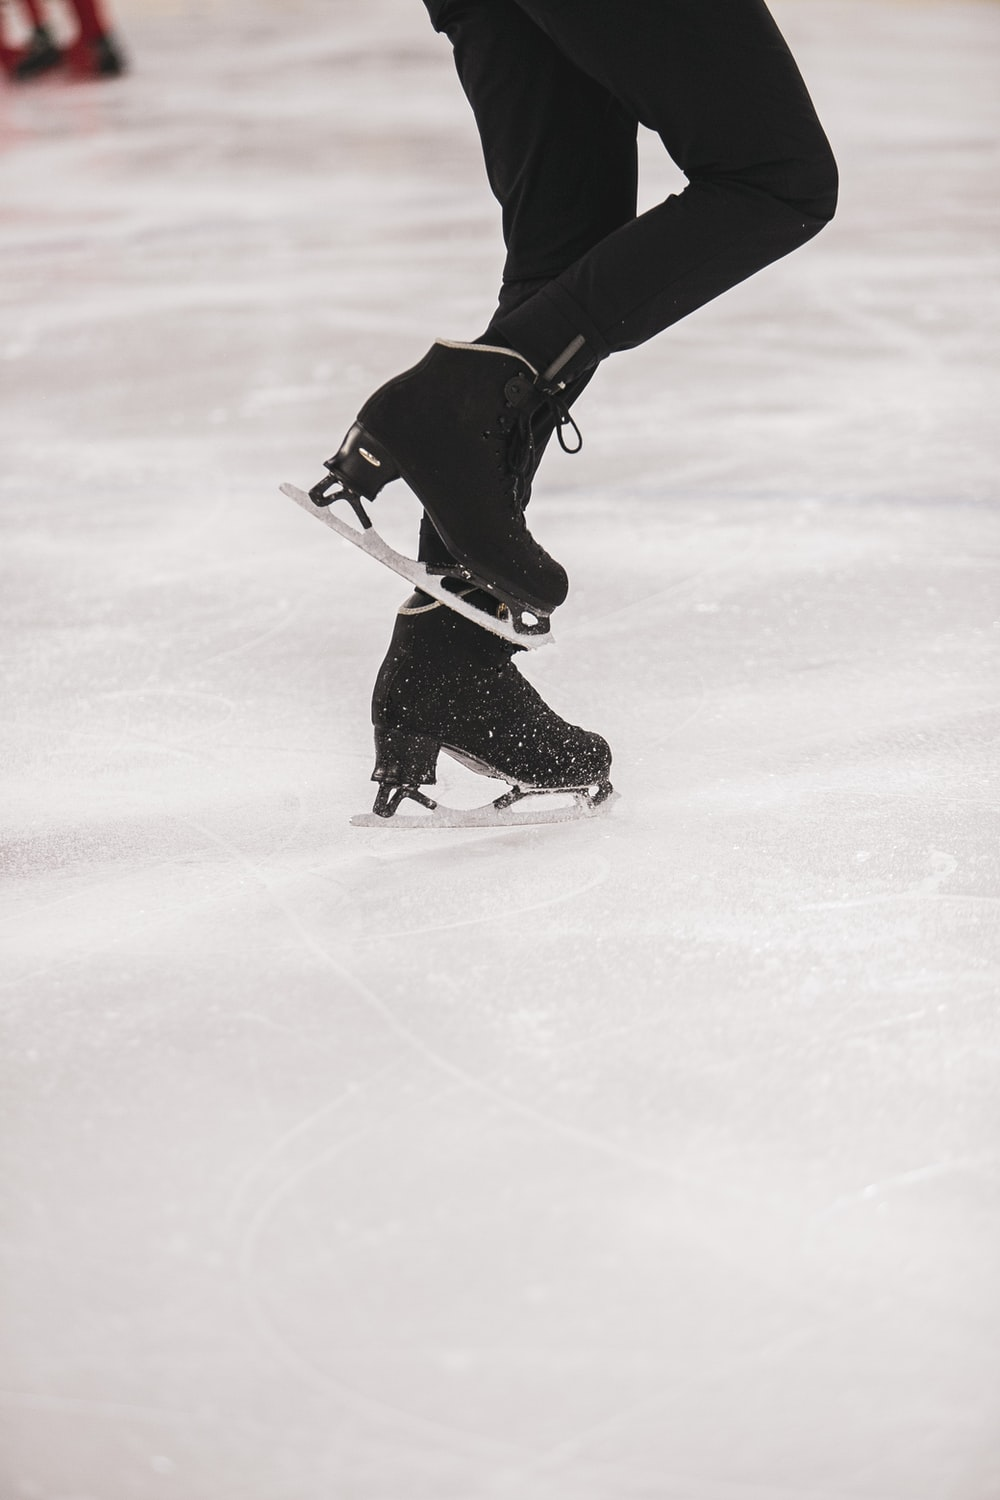 person in black jacket and black pants playing ice hockey